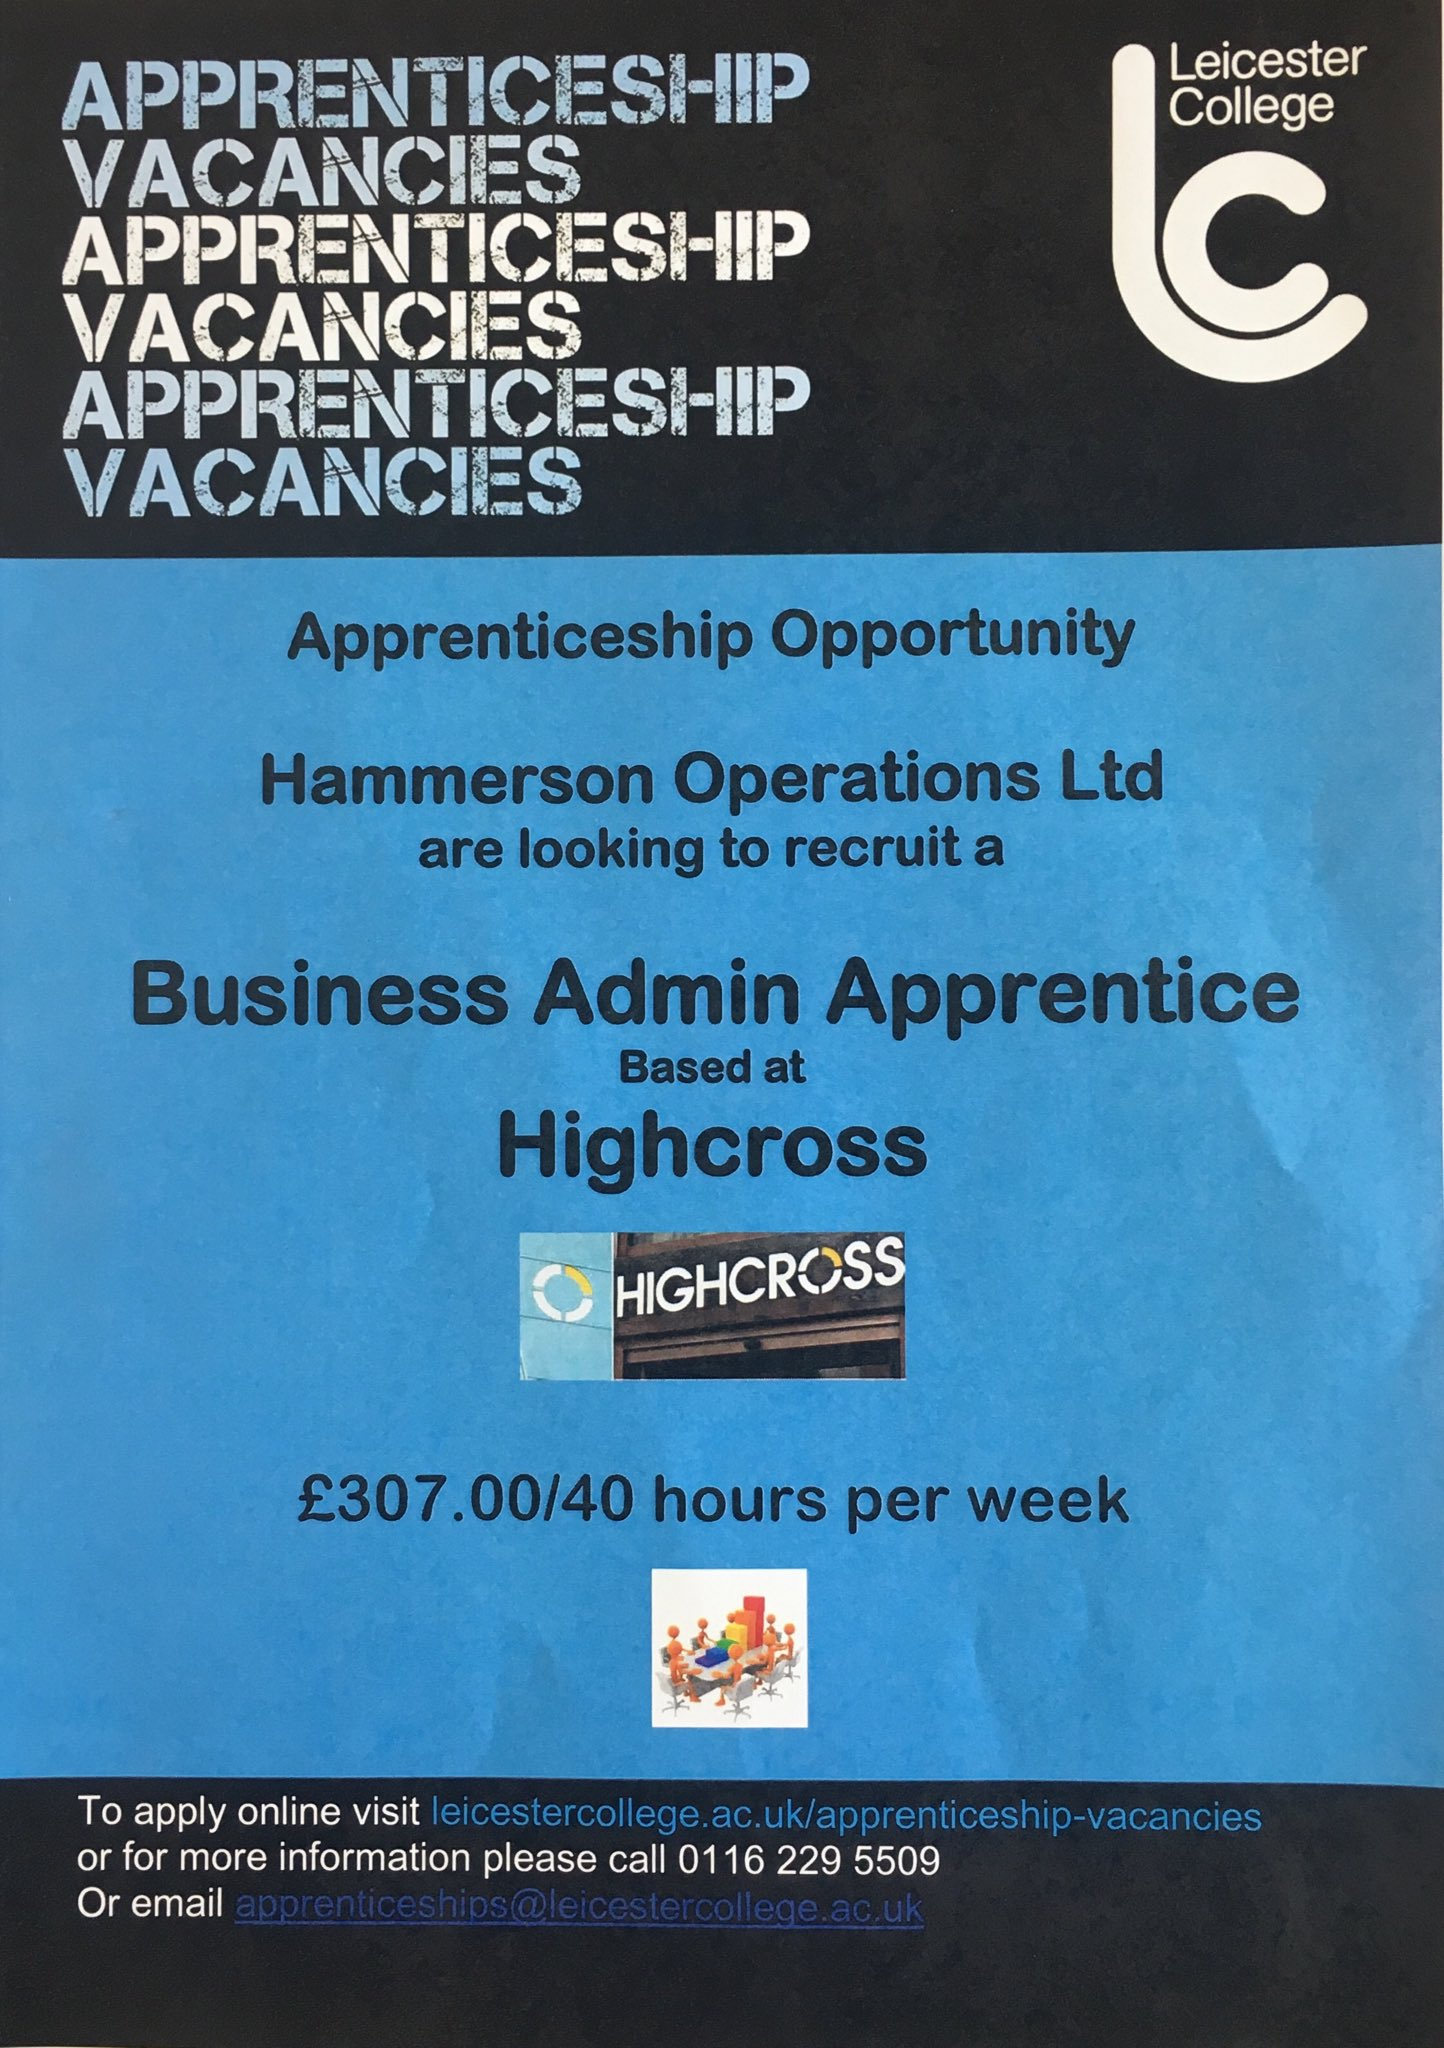 What a fantastic opportunity! Are you looking to #Earn & #Learn? This could be the perfect #apprenticeship  #opportunity for you! Find out how @Highcross @Hammersonplc @LeicesterColl can help be part of #YourFuture #Careers #Employment https://t.co/ad9Tfj4nfI